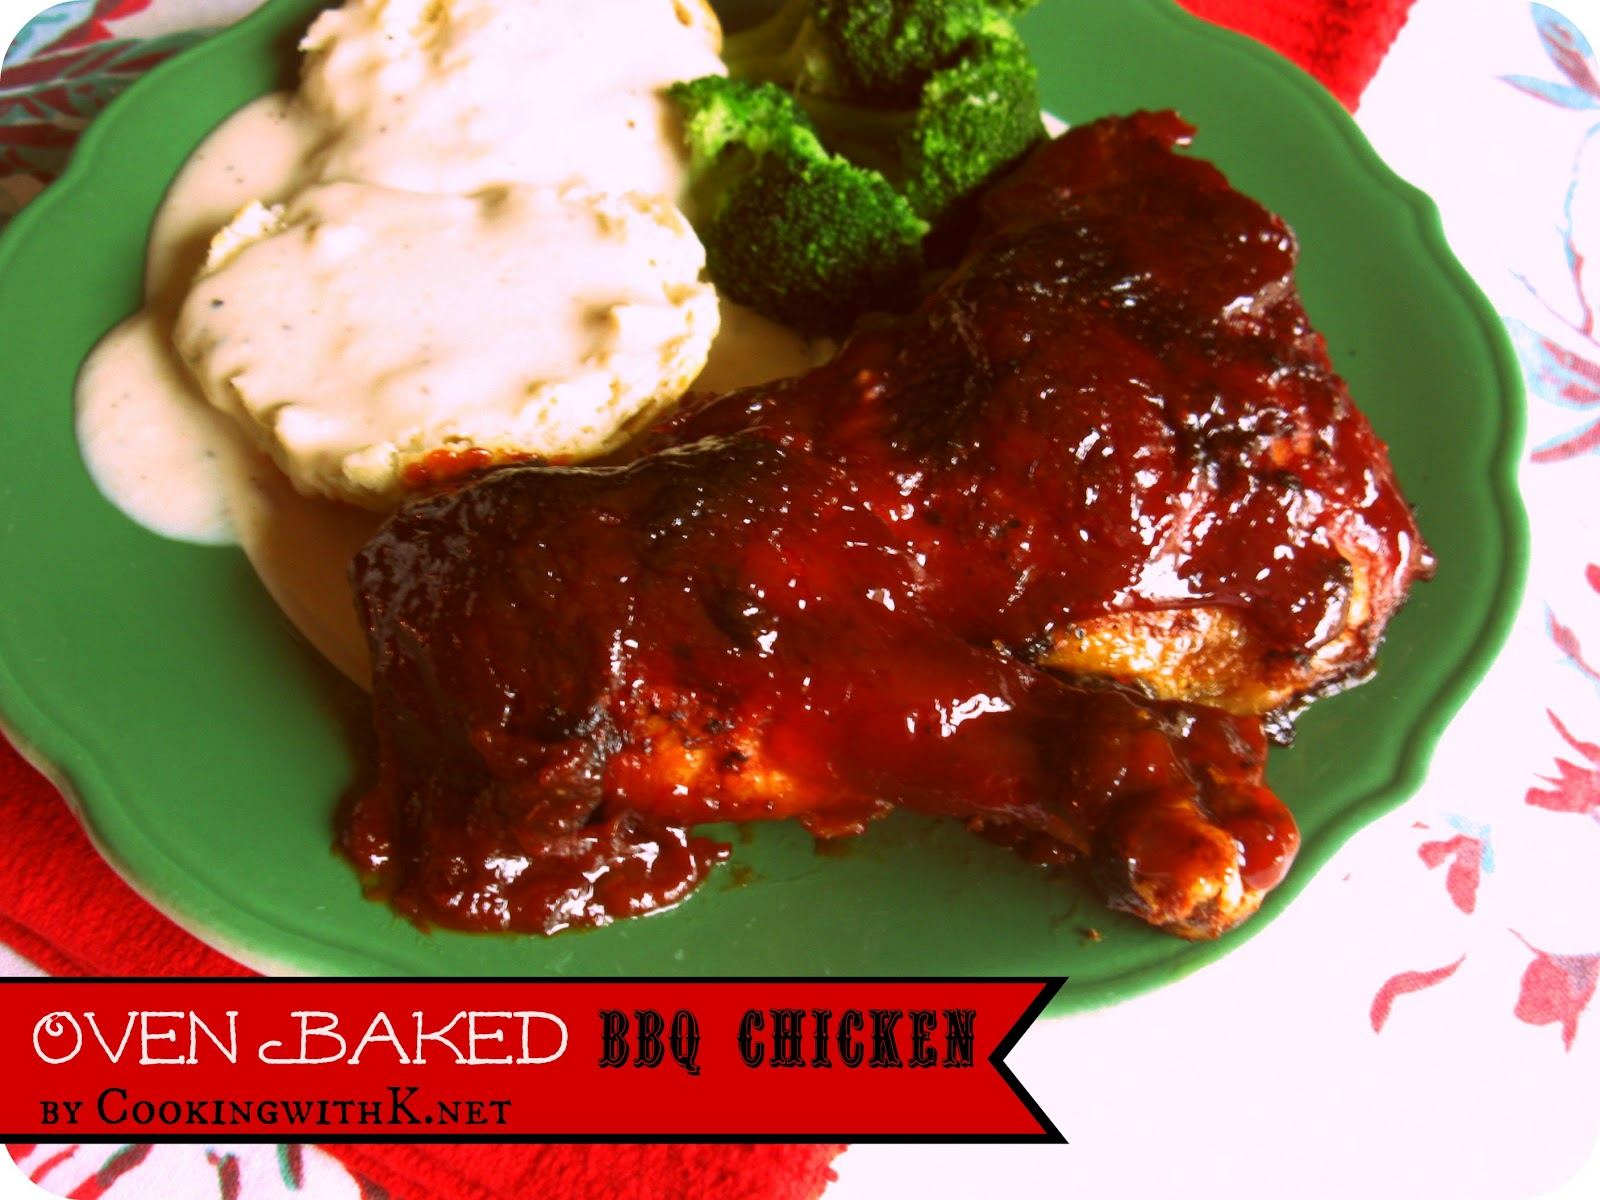 Cooking with k oven baked bbq chicken the secret to for What sides go with barbecue chicken